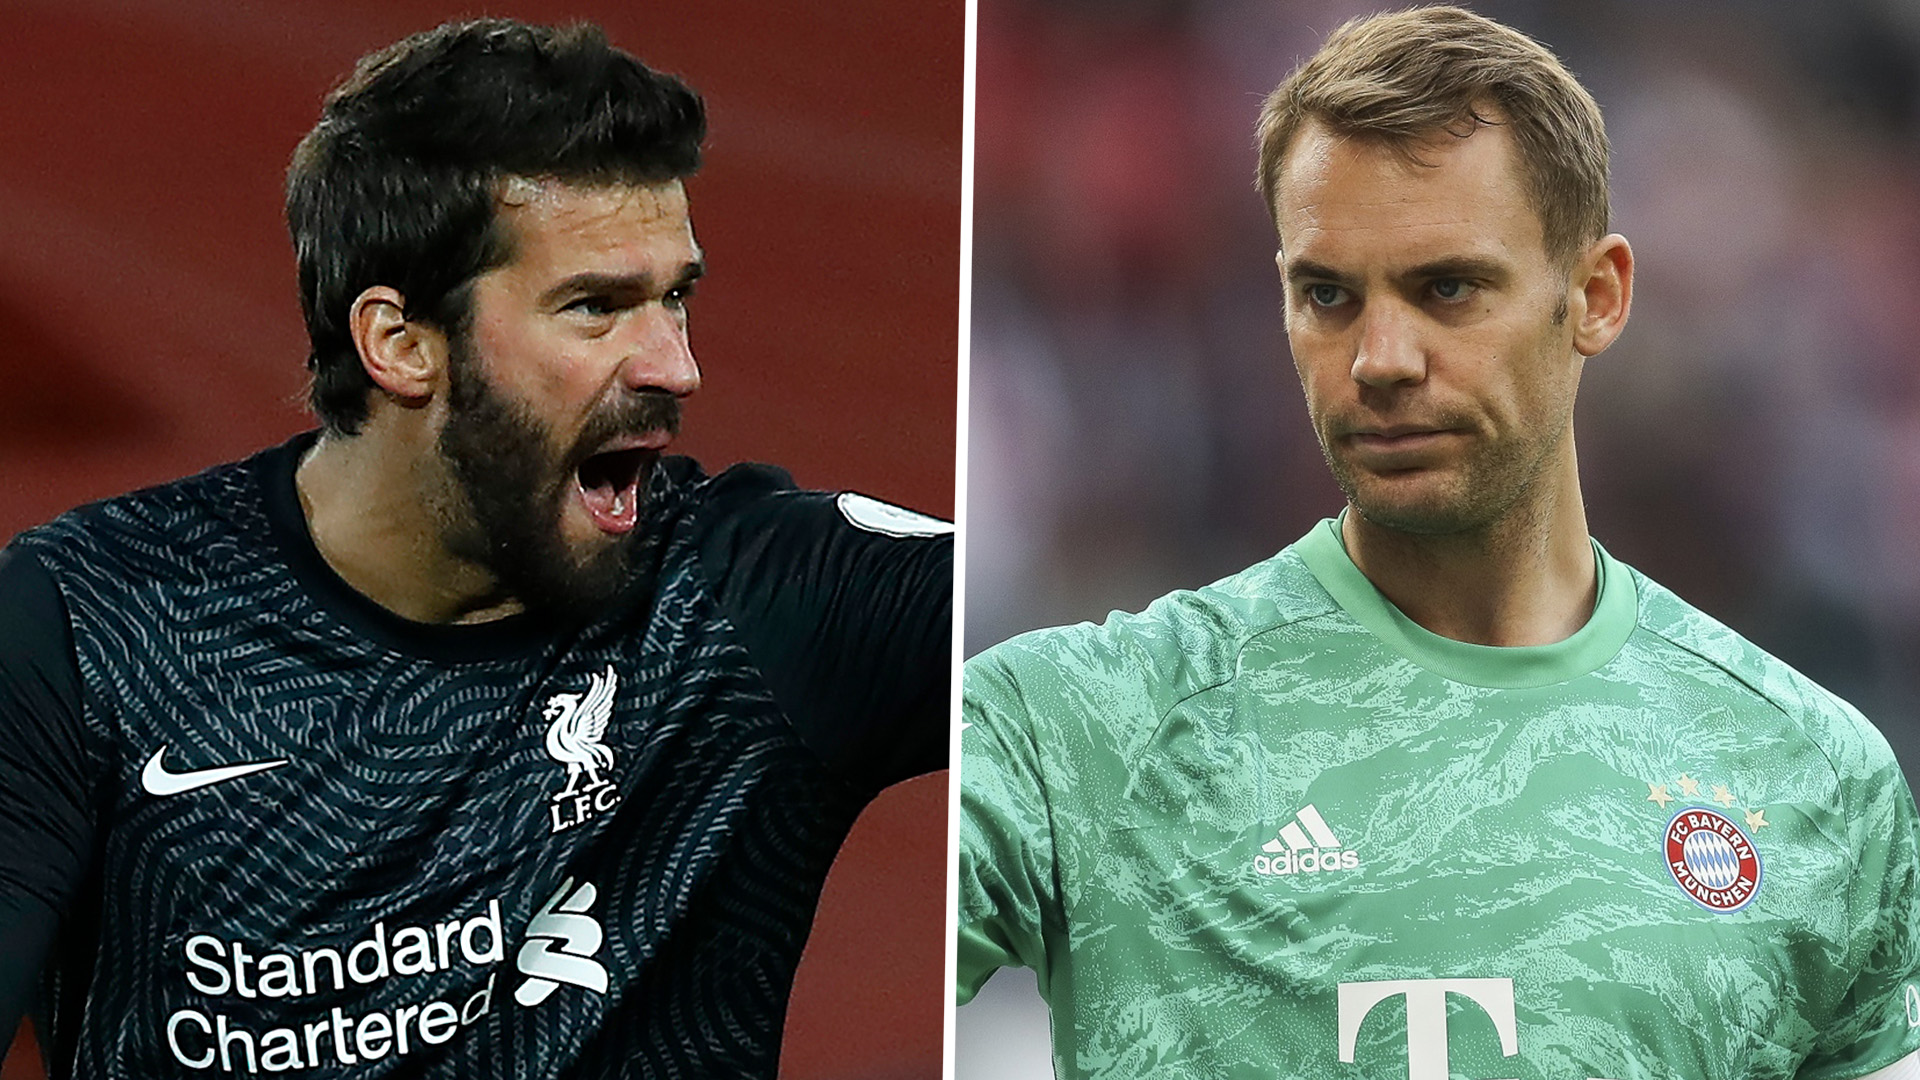 Alisson is 'Ronaldo-esque' but Neuer is best goalkeeper in the world, says ex-Liverpool No.1 James